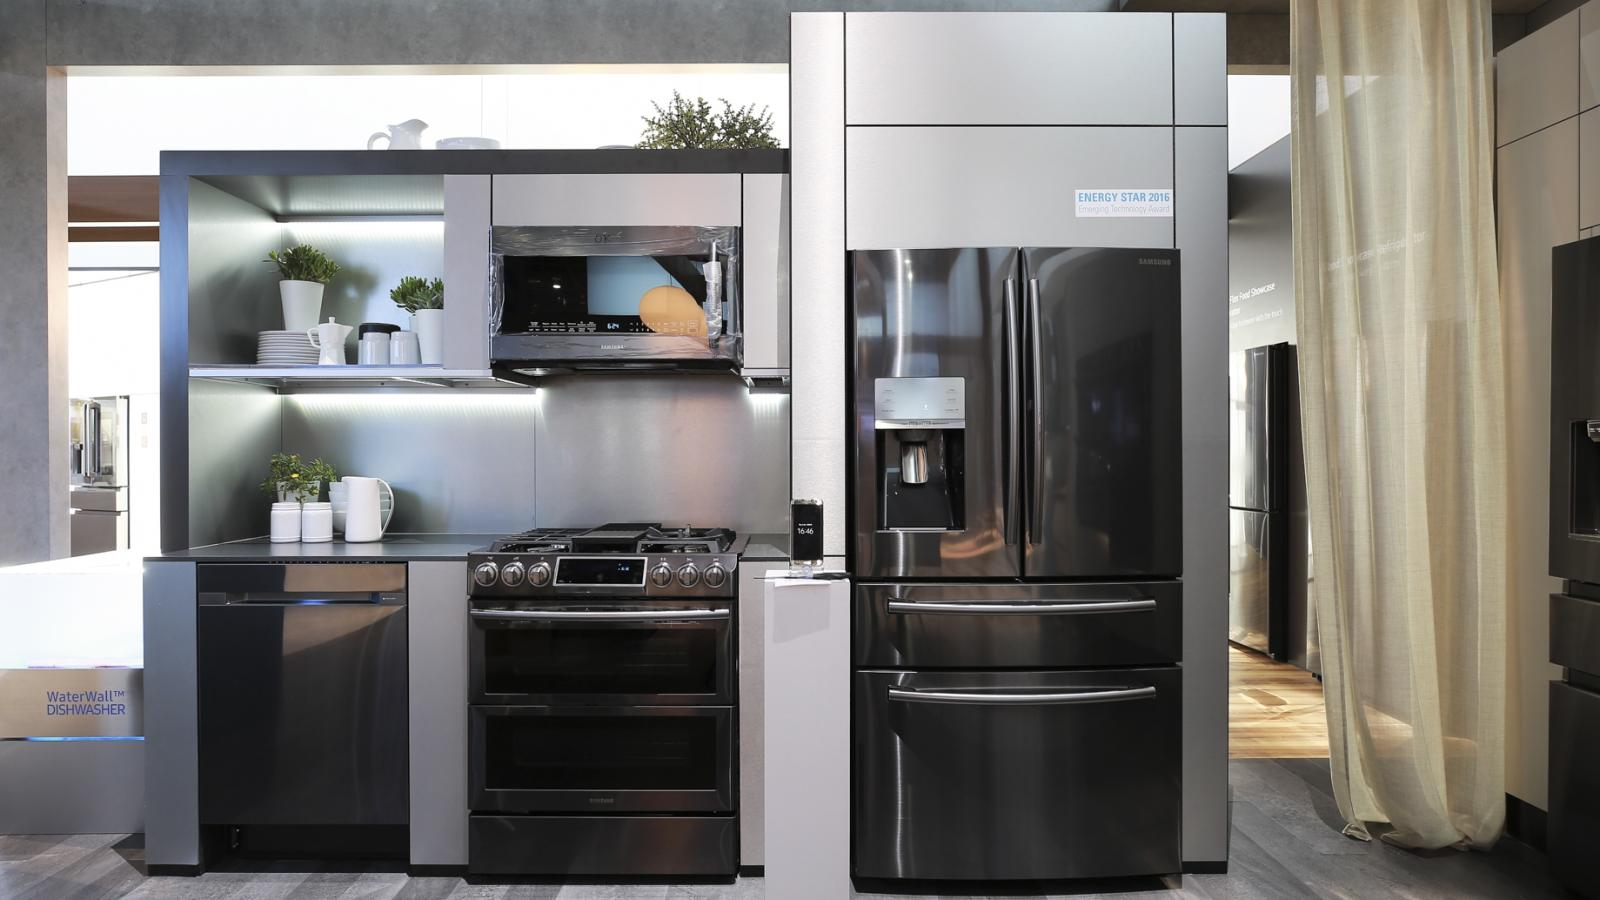 Samsung Wants To Make Its Fridges Tvs Smartphones And Other Devices Conduits For Controlling Your Smart Home Quartz